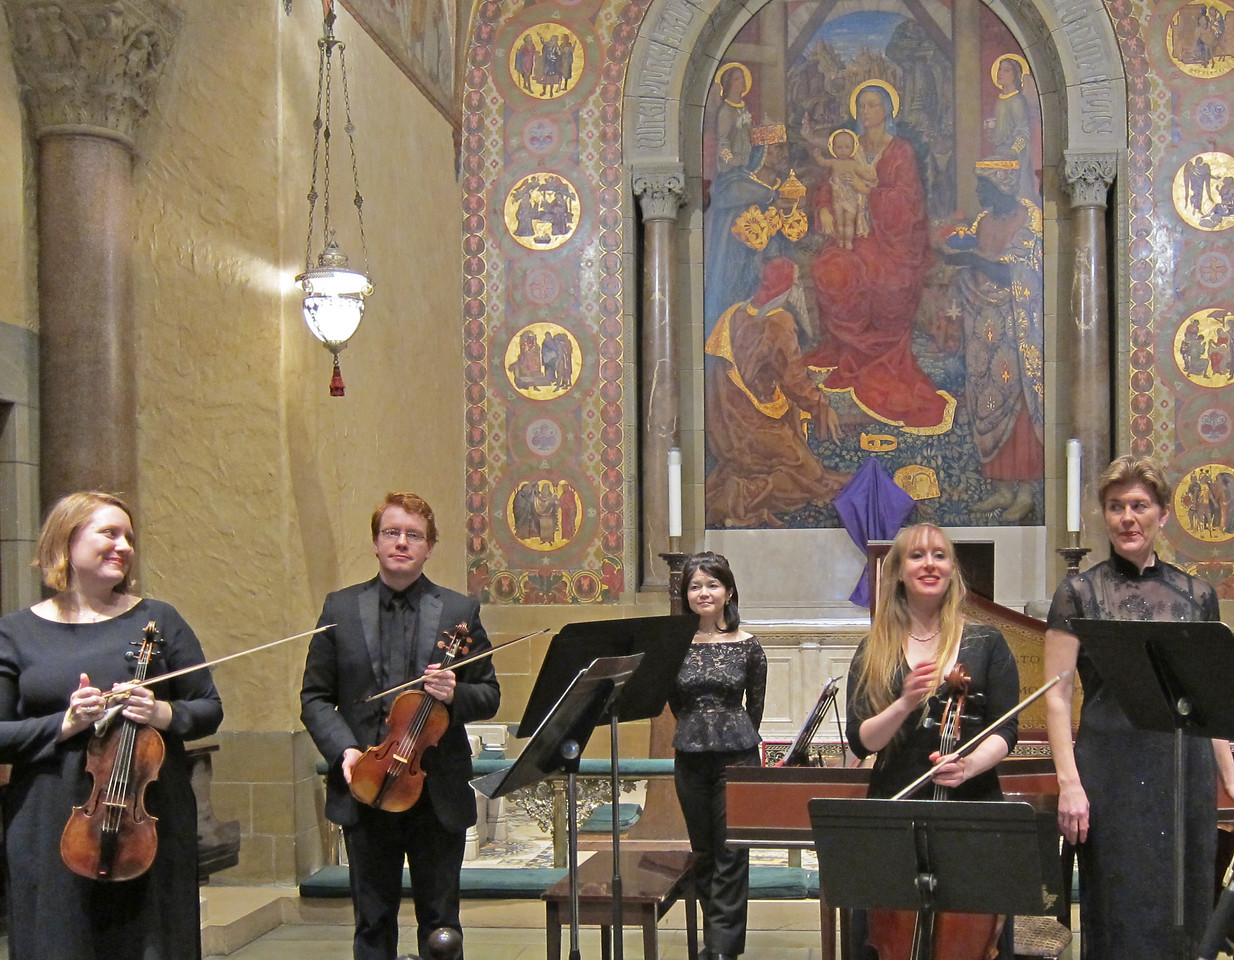 x2017-03-23_The Queens Consort_Midtown Concerts (11)_final bow